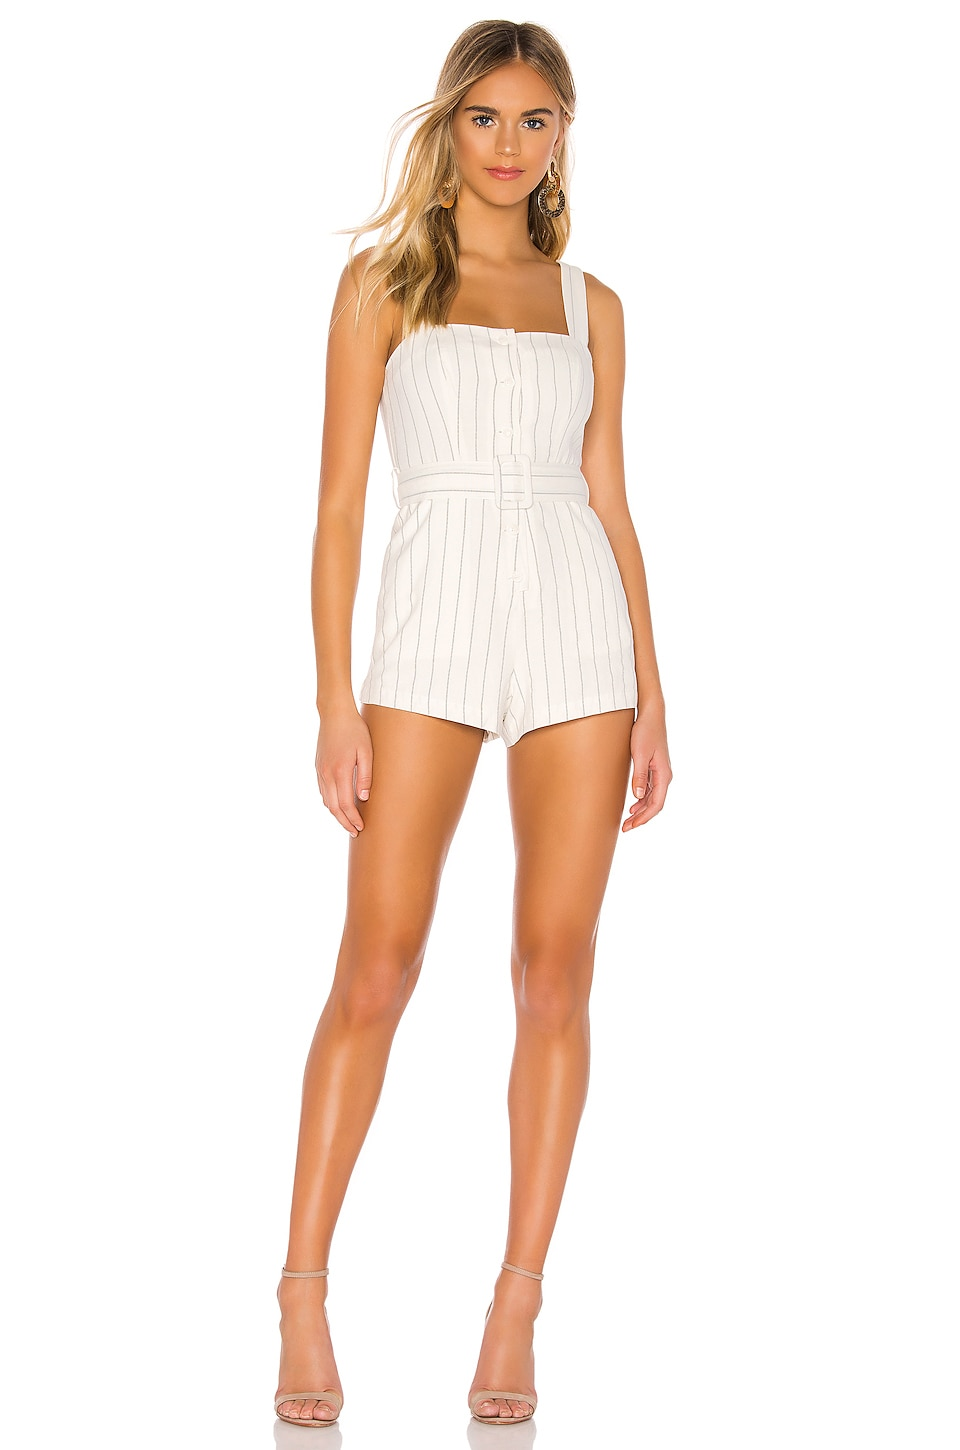 Tularosa Staycation Romper in White